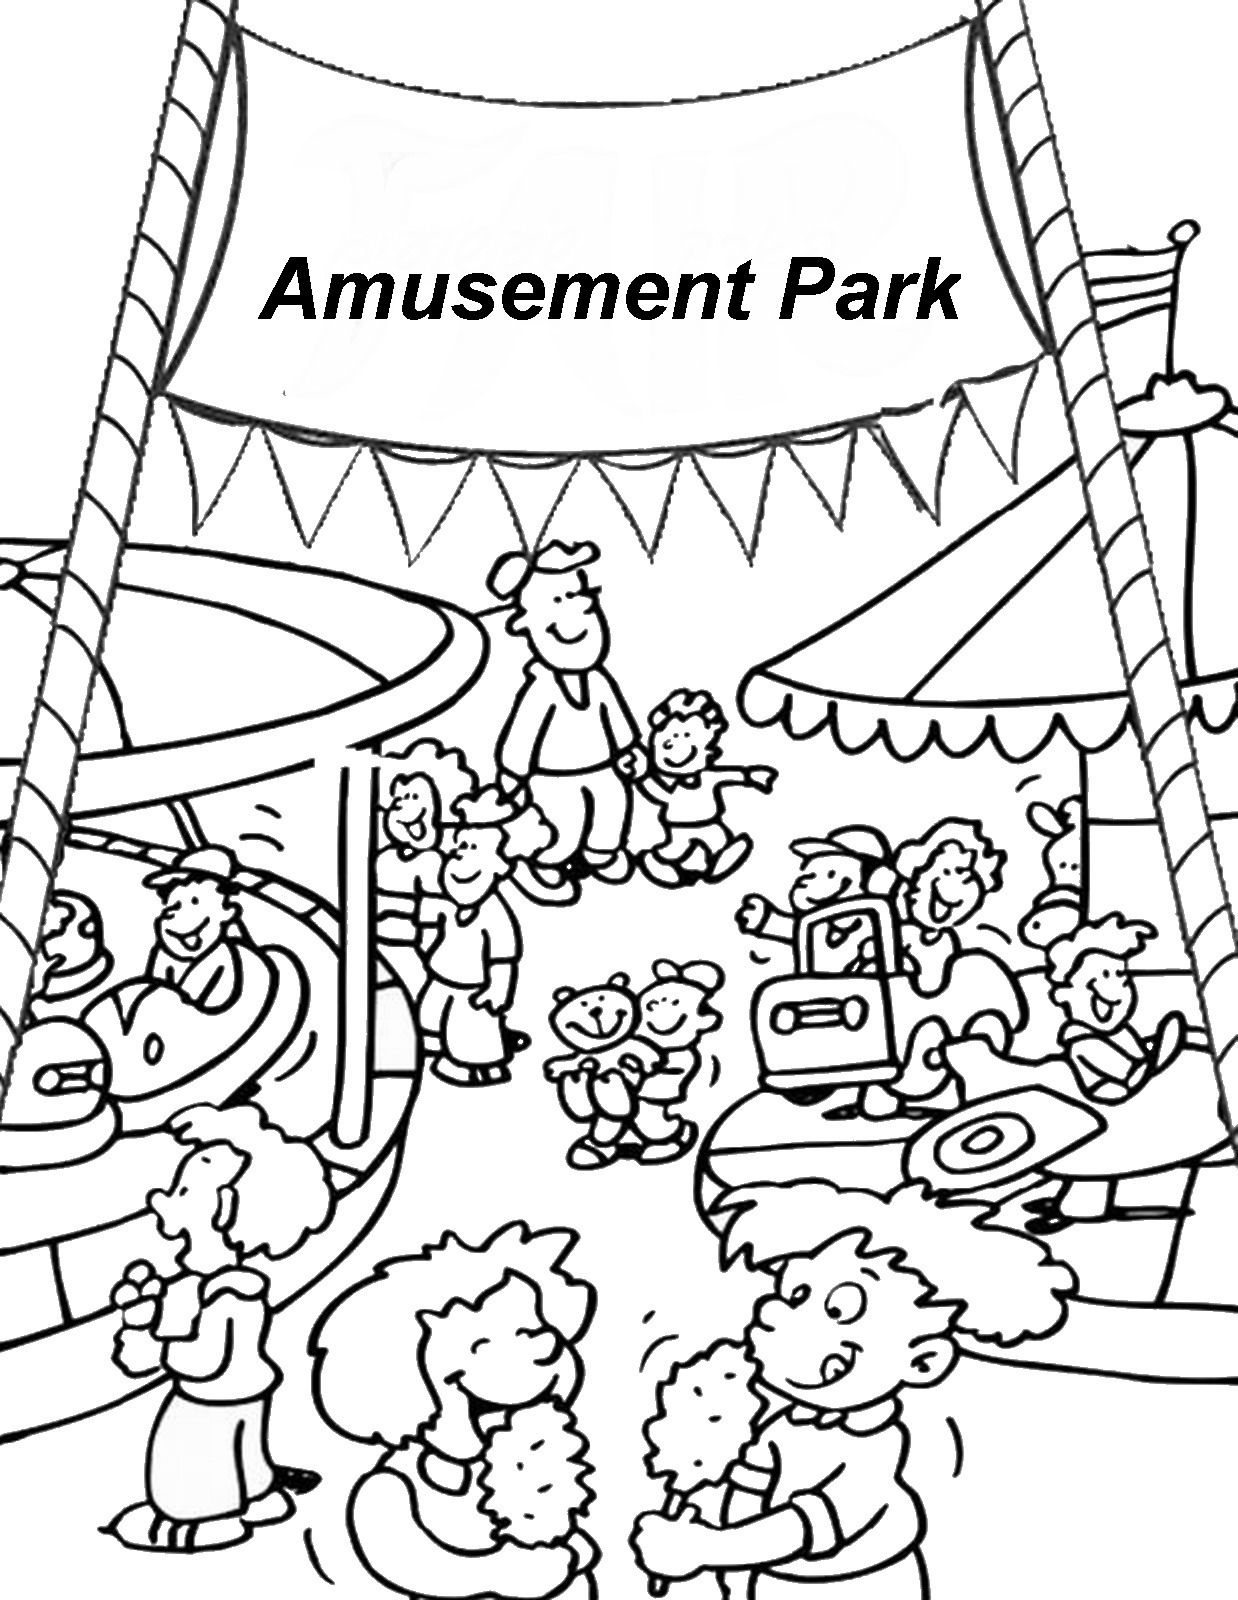 Vacation Cl Amusement Park Pages On Leapfrog Printable The